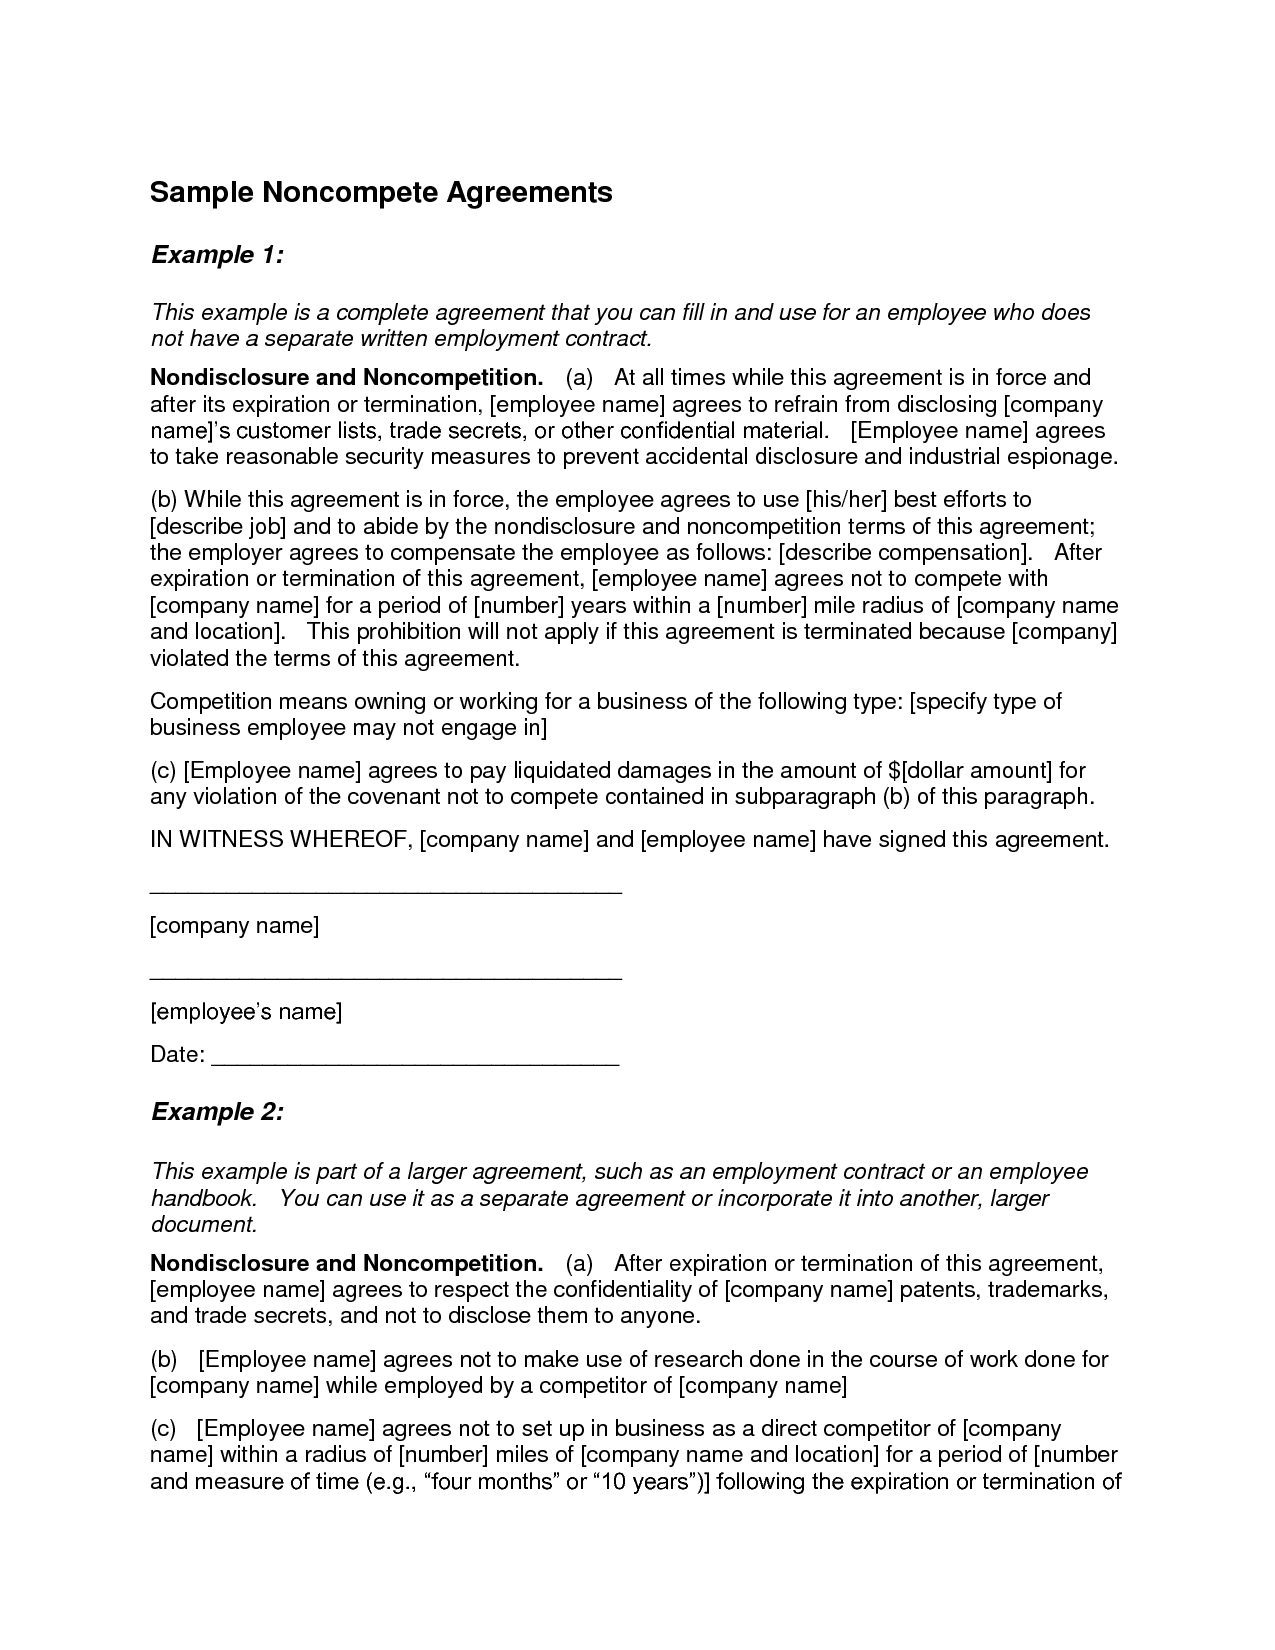 Employment Agreement Non Compete Clause Sample